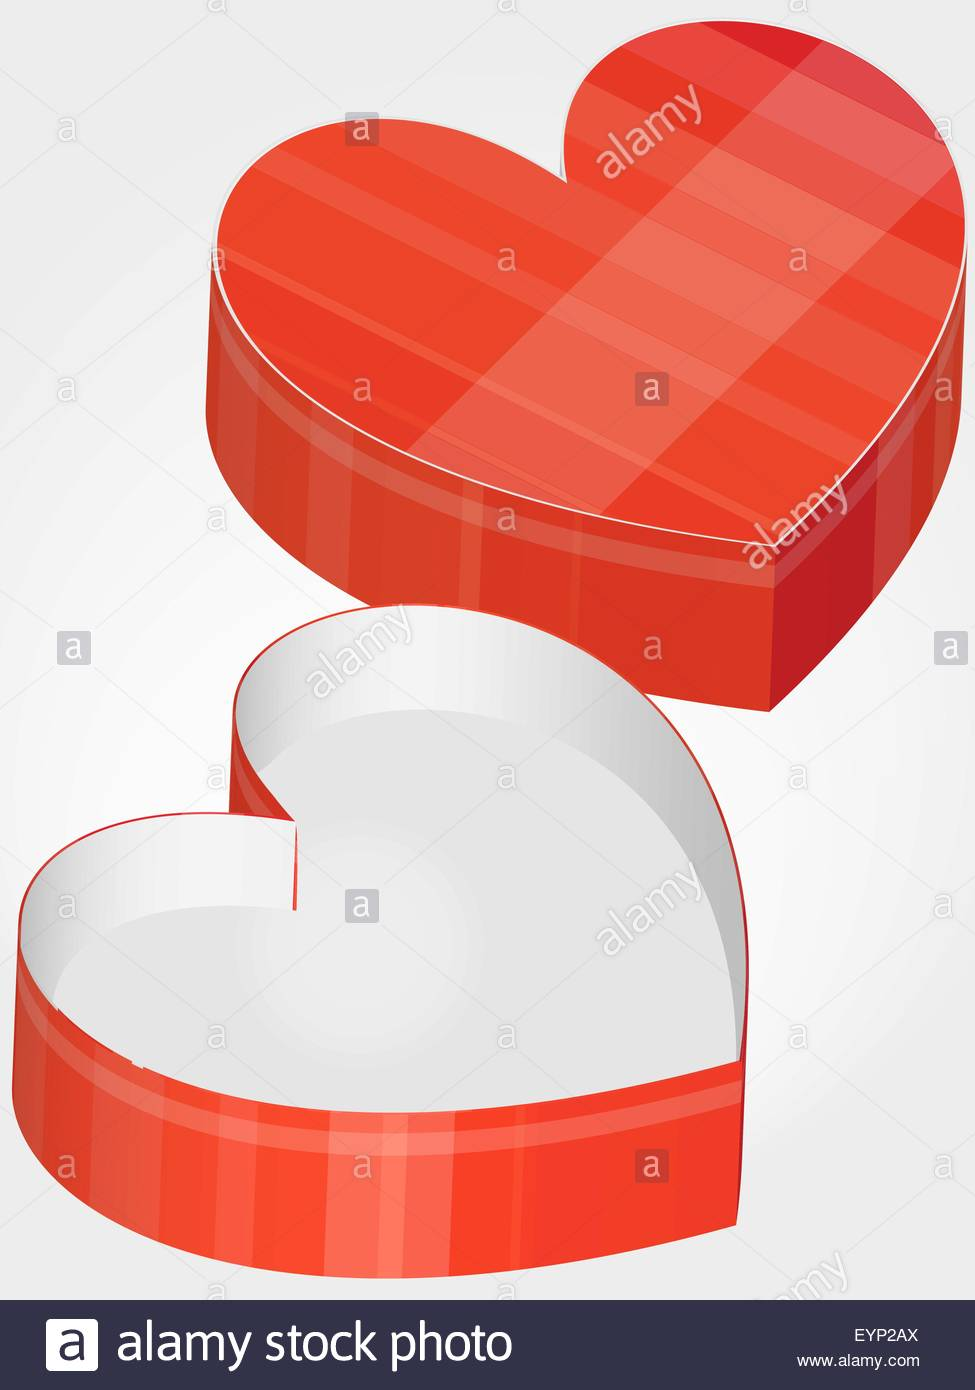 Empty heart shaped chocolate box stock vector art illustration empty heart shaped chocolate box ccuart Images